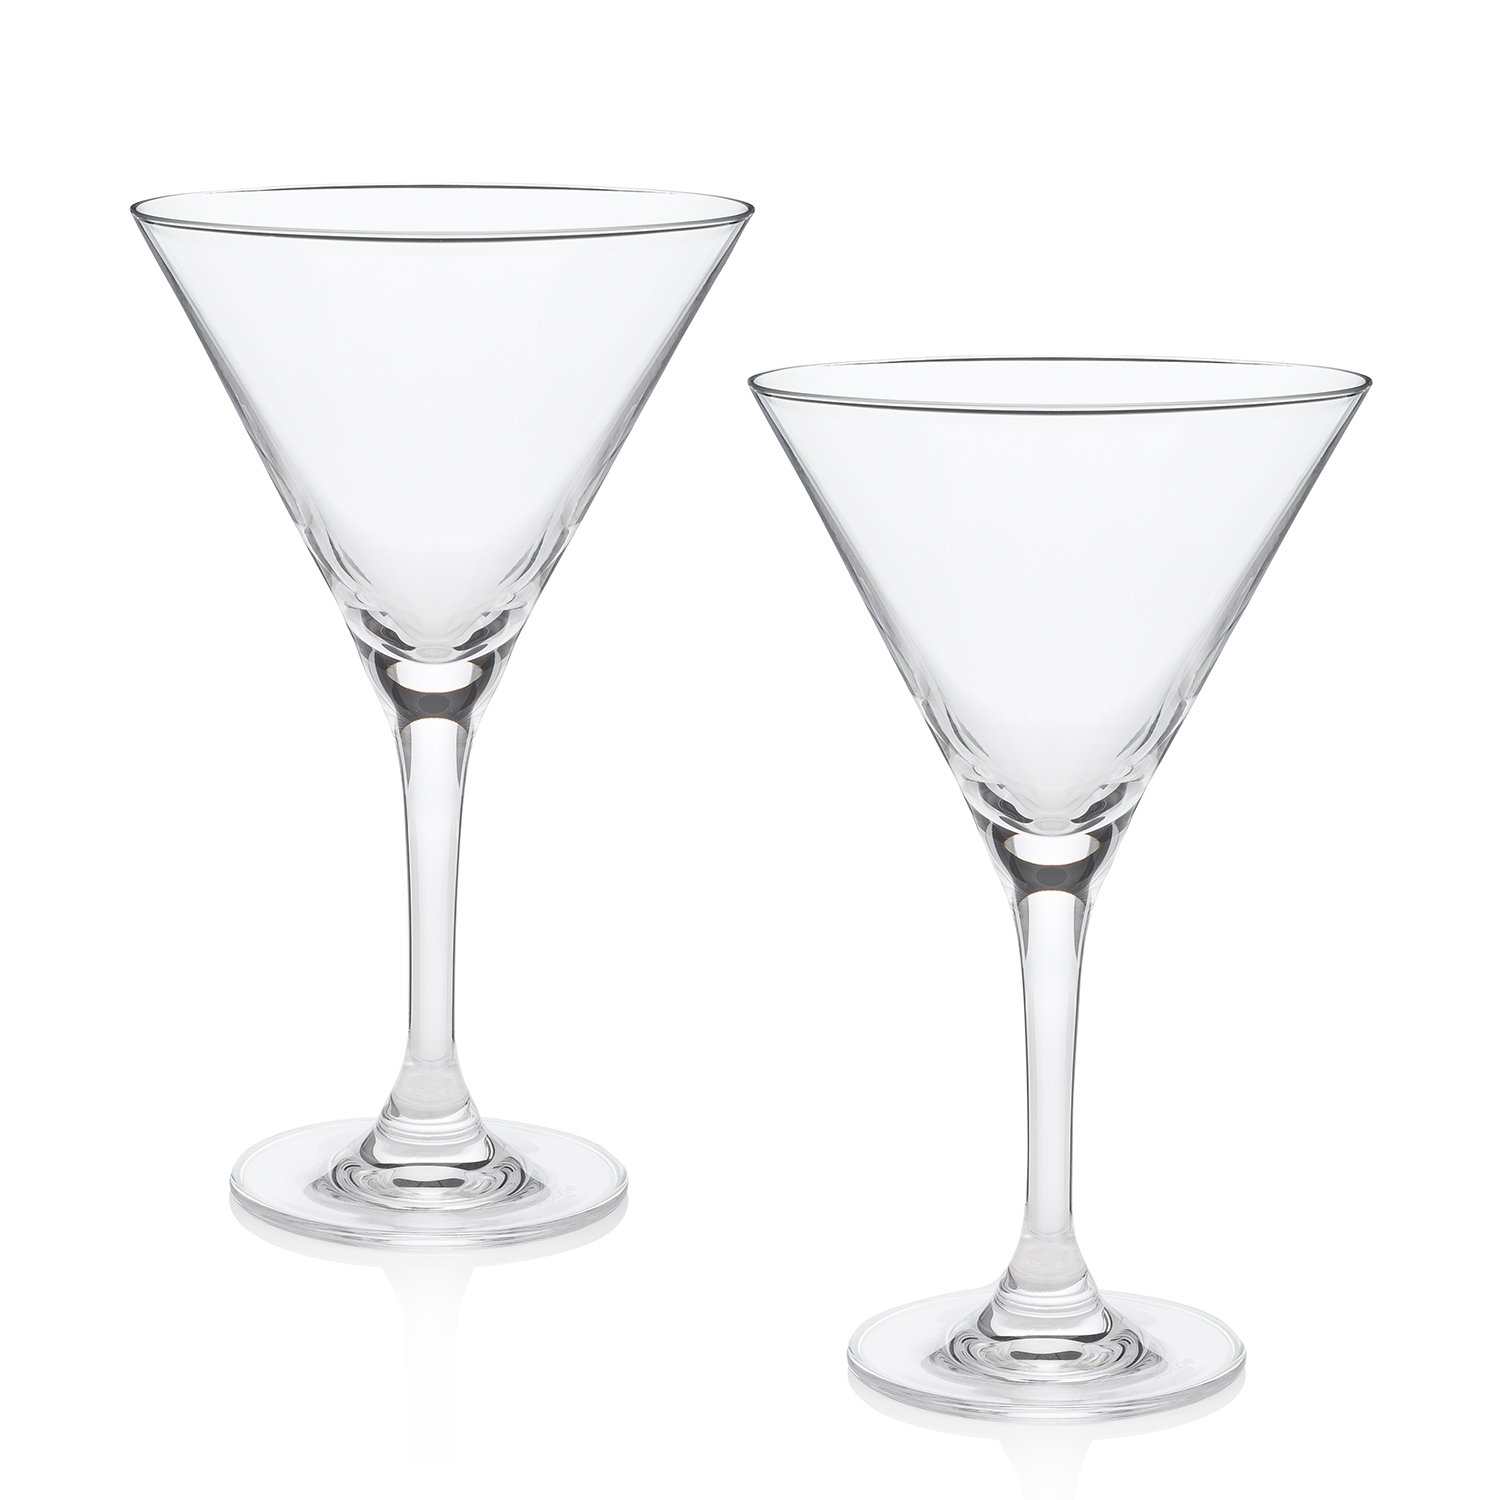 The World's Best Martini Glass (Duke's Bar Set of 2)